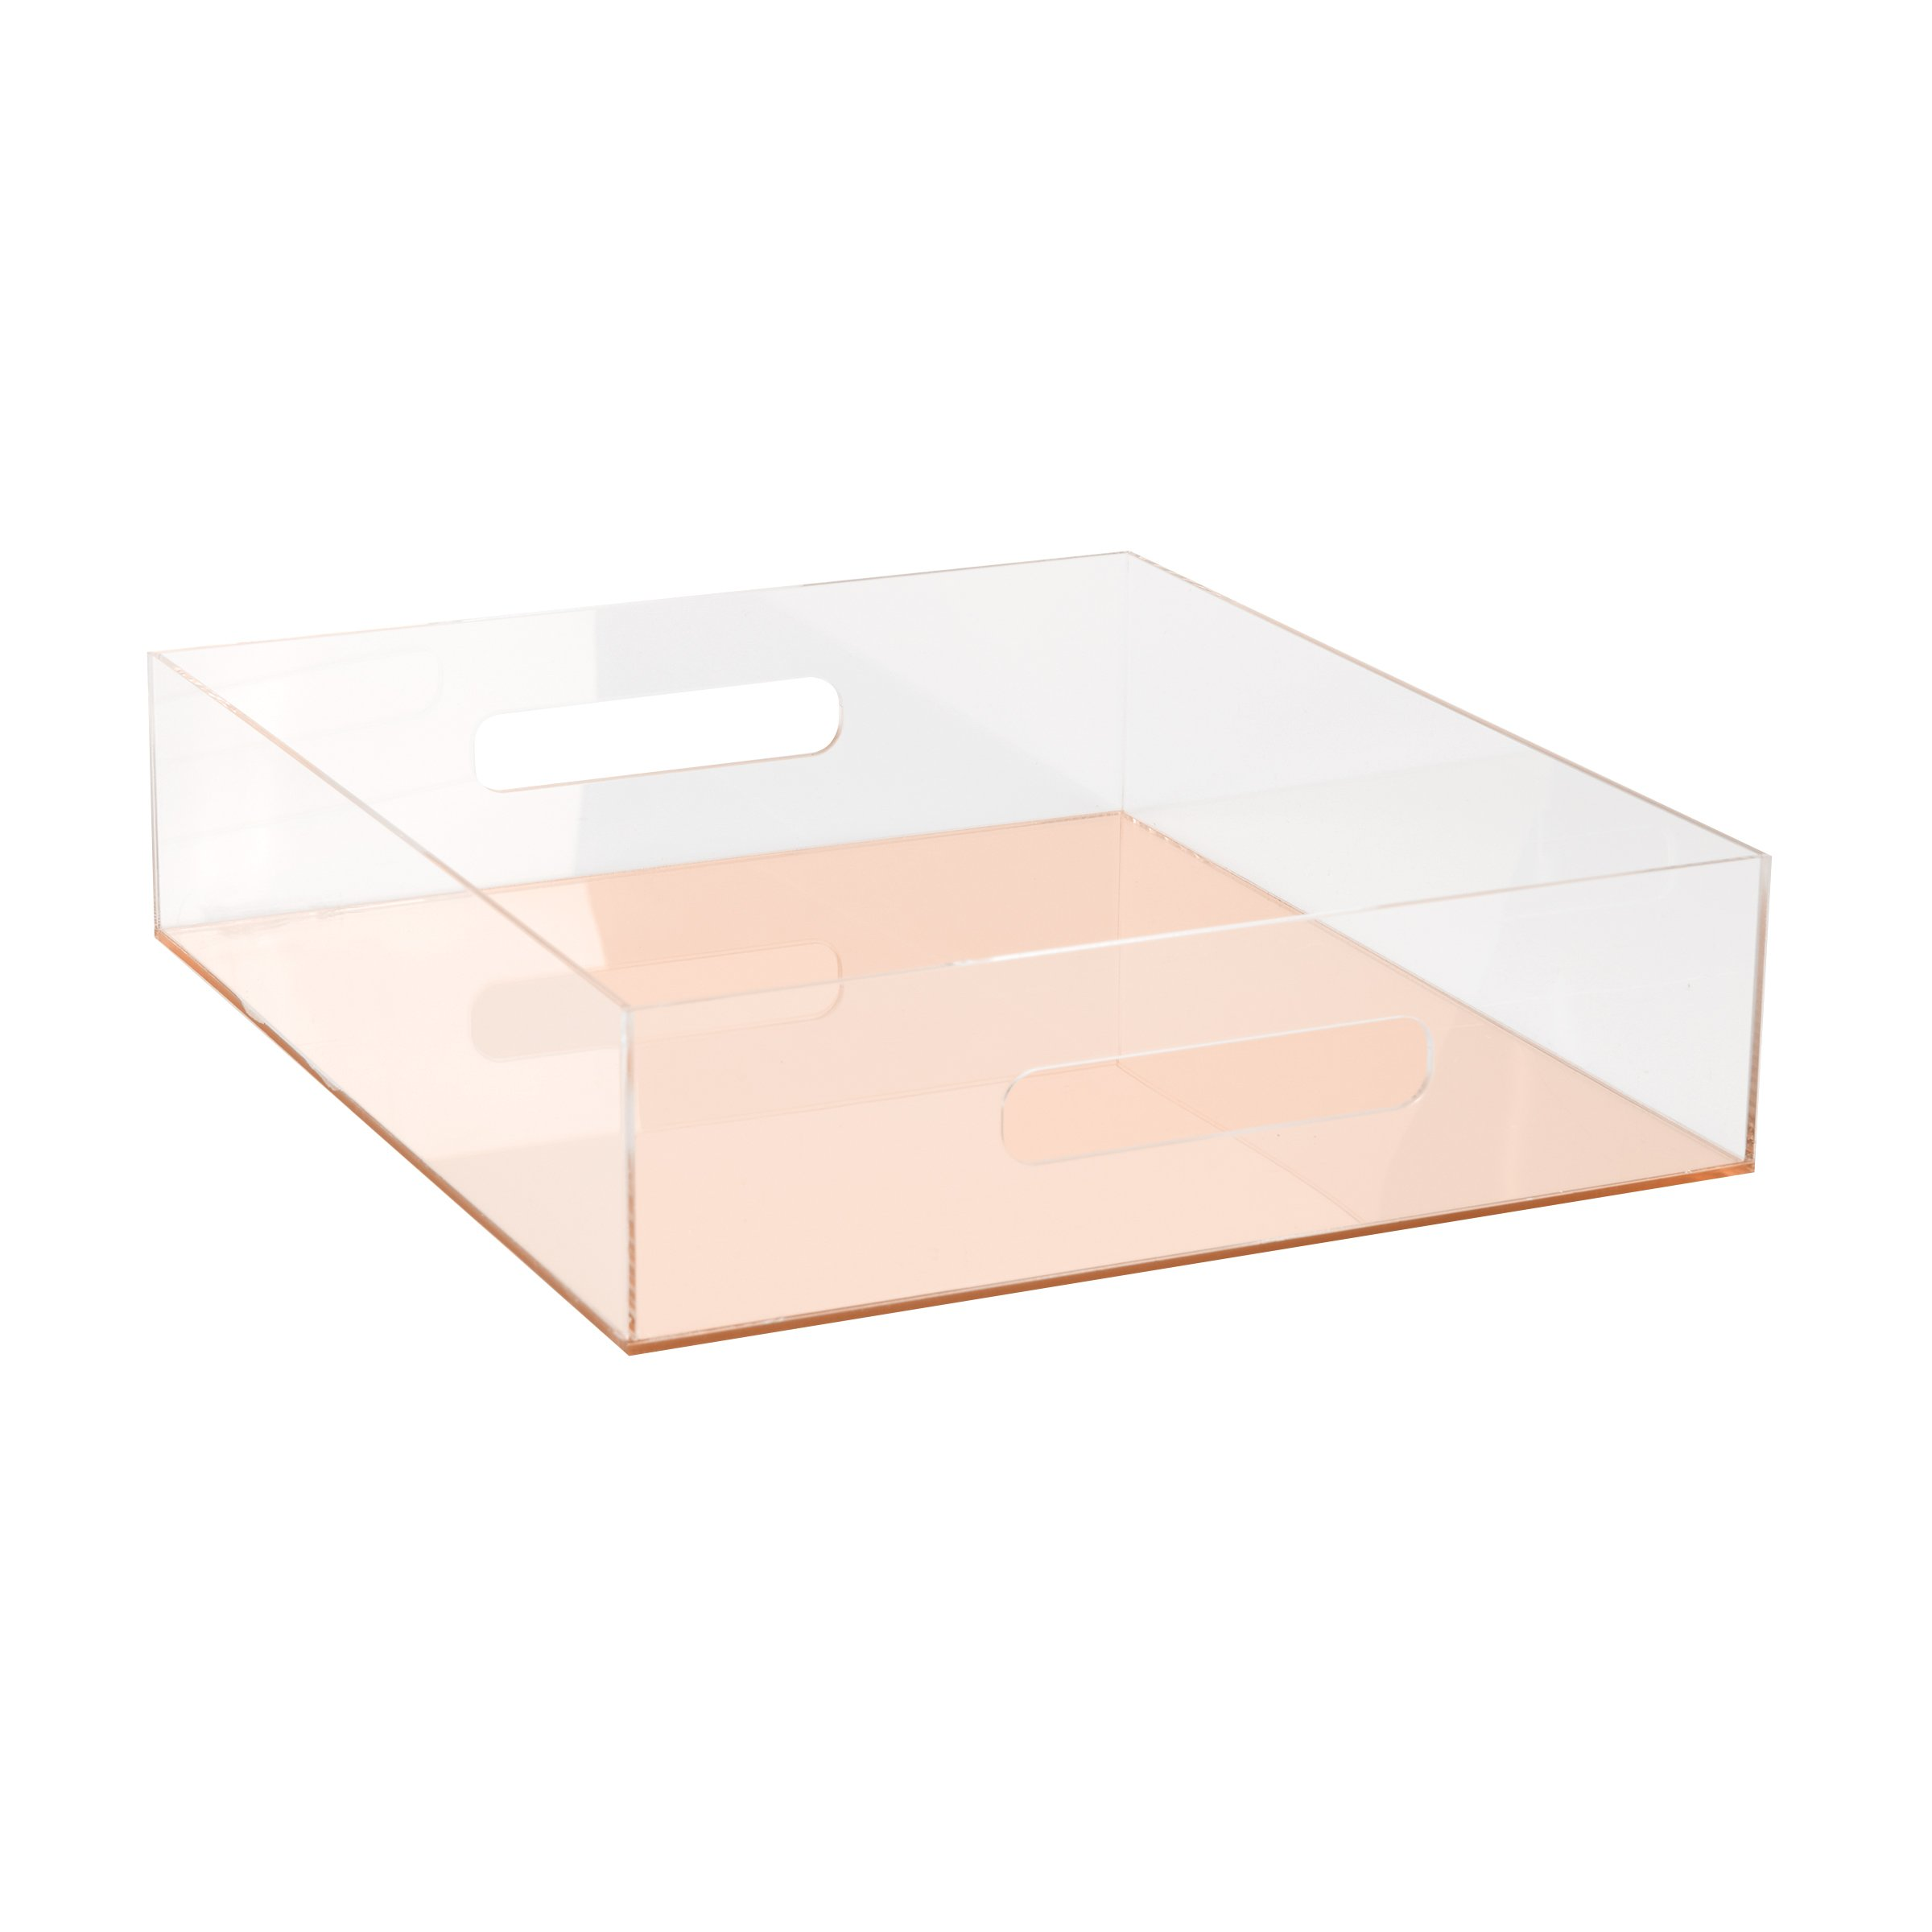 C.R. Gibson Clear Acrylic Letter Tray, Mirror Panel, Measures 10.5'' W x 12'' H x 3'' D - Rose Gold